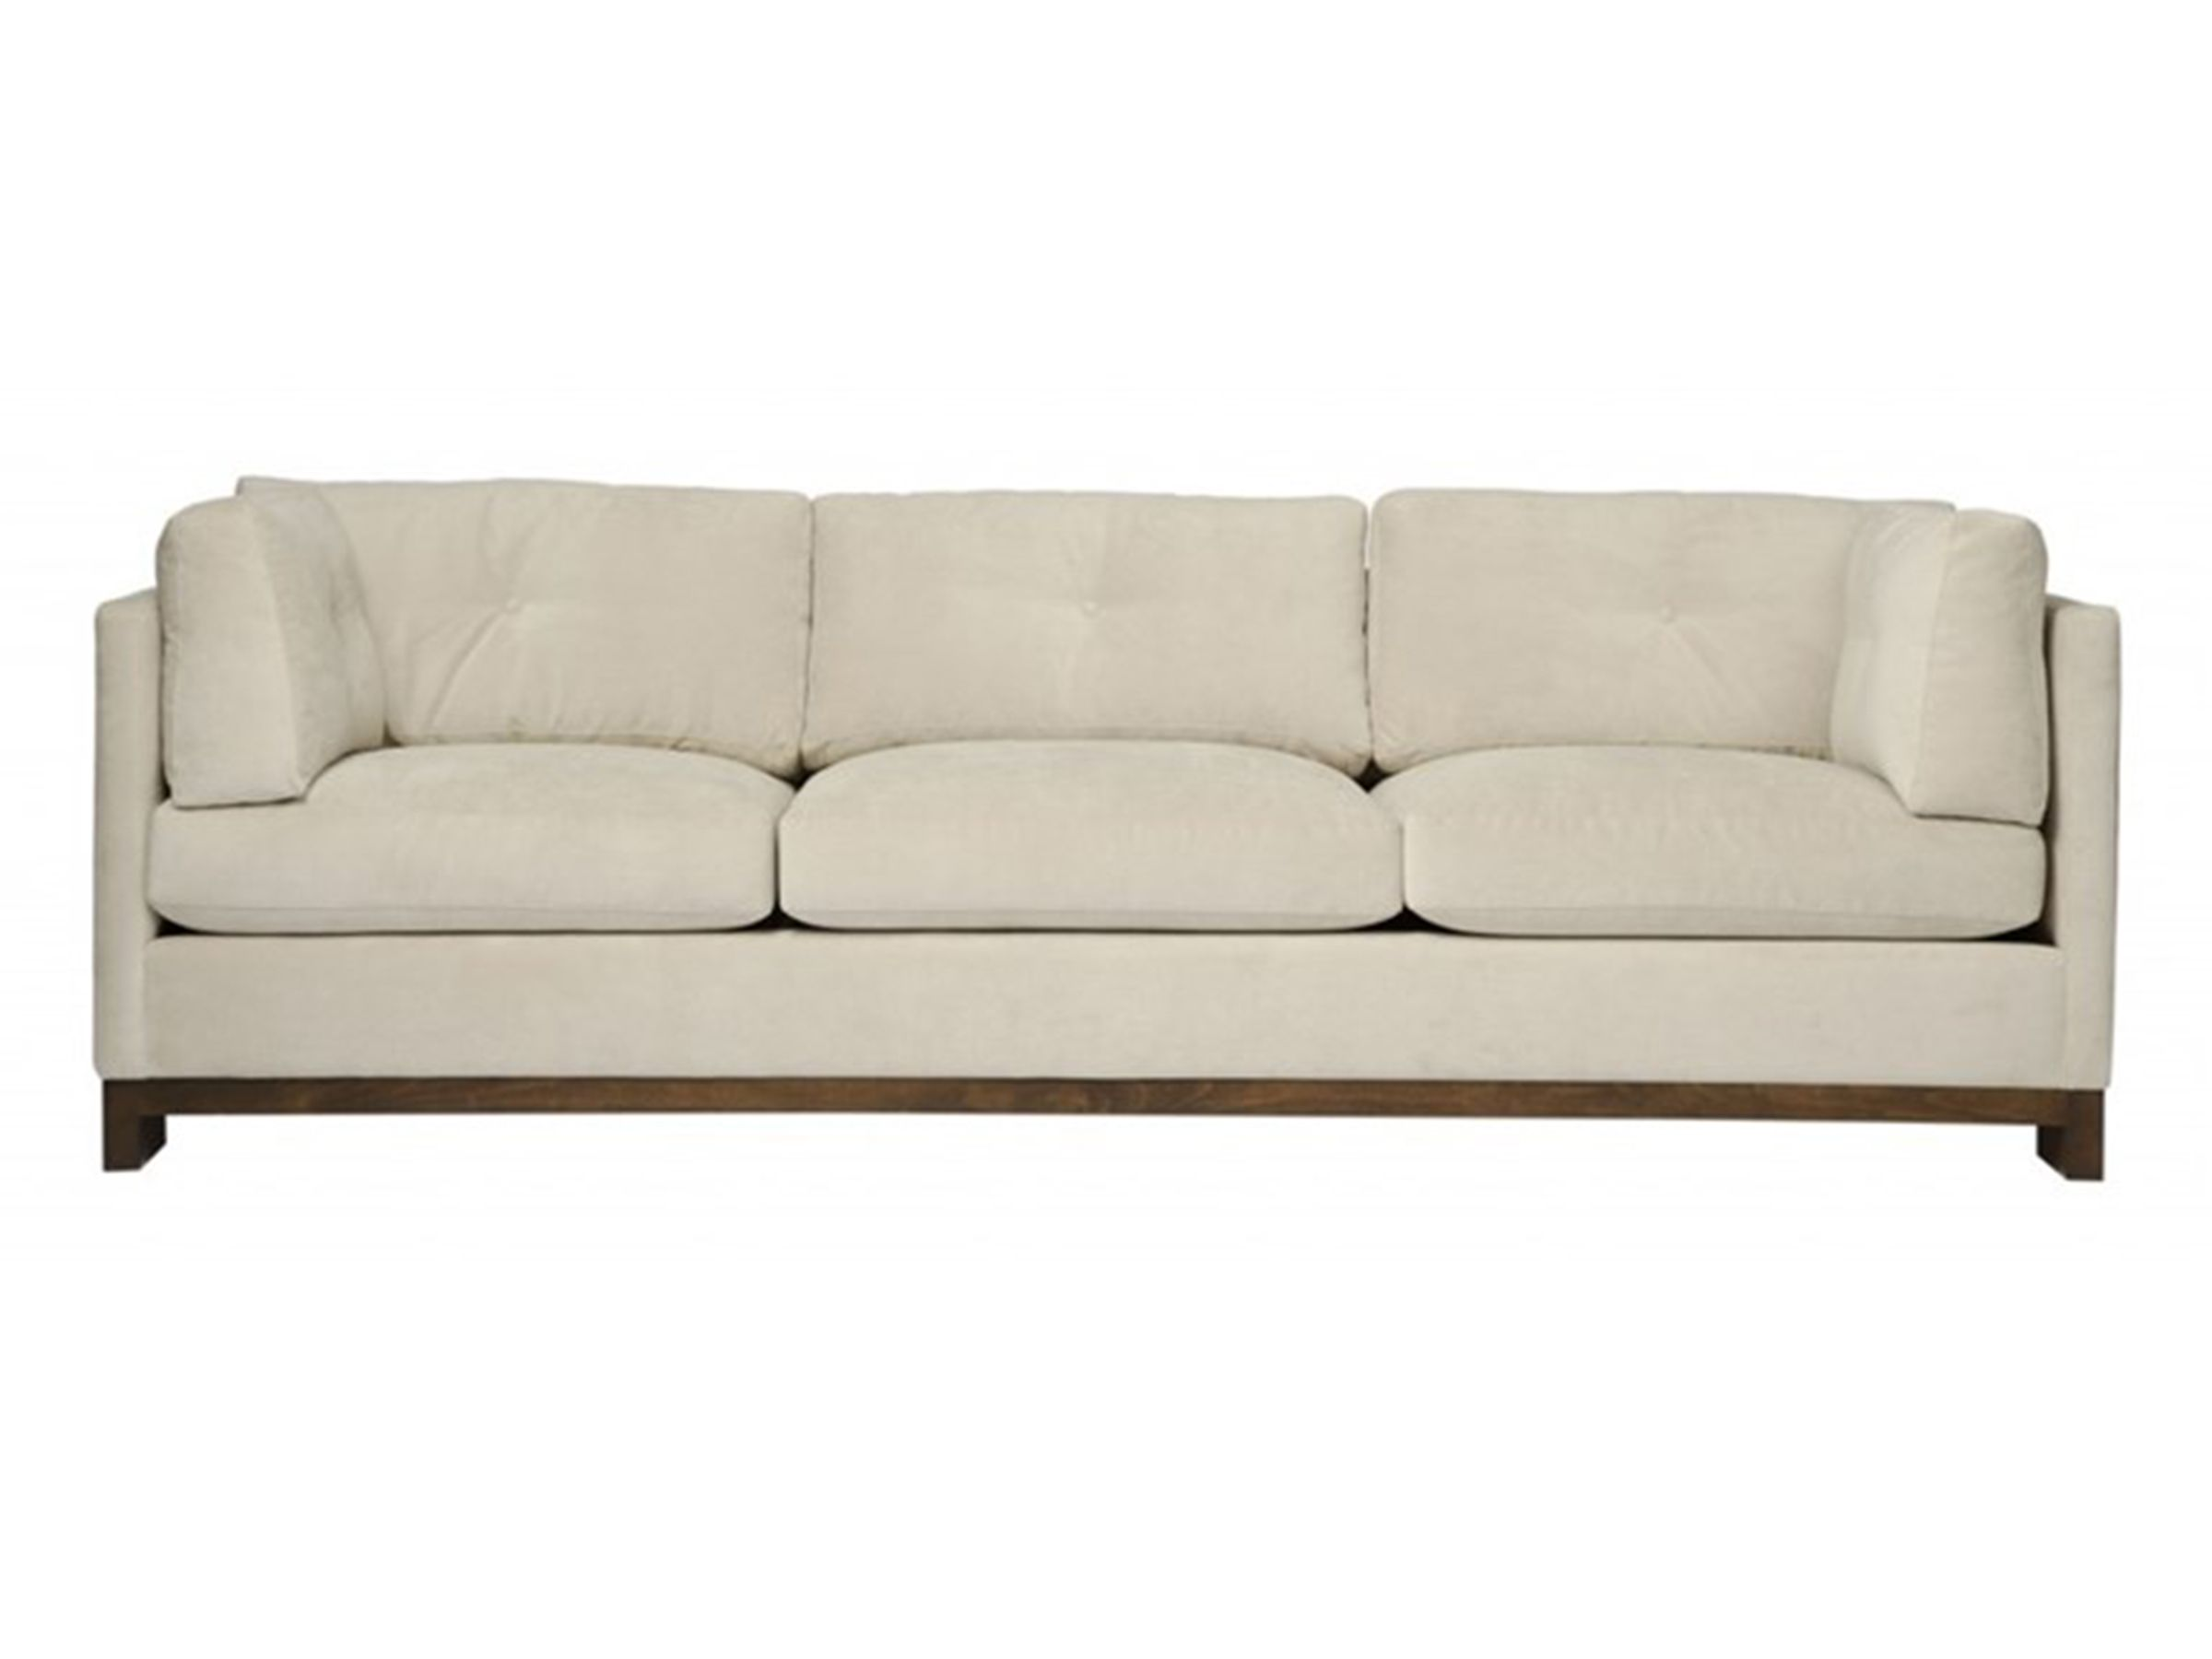 Living Room Furniture Canada Sofa Bed Montreal Canada Sleepers Futons Costco Thesofa